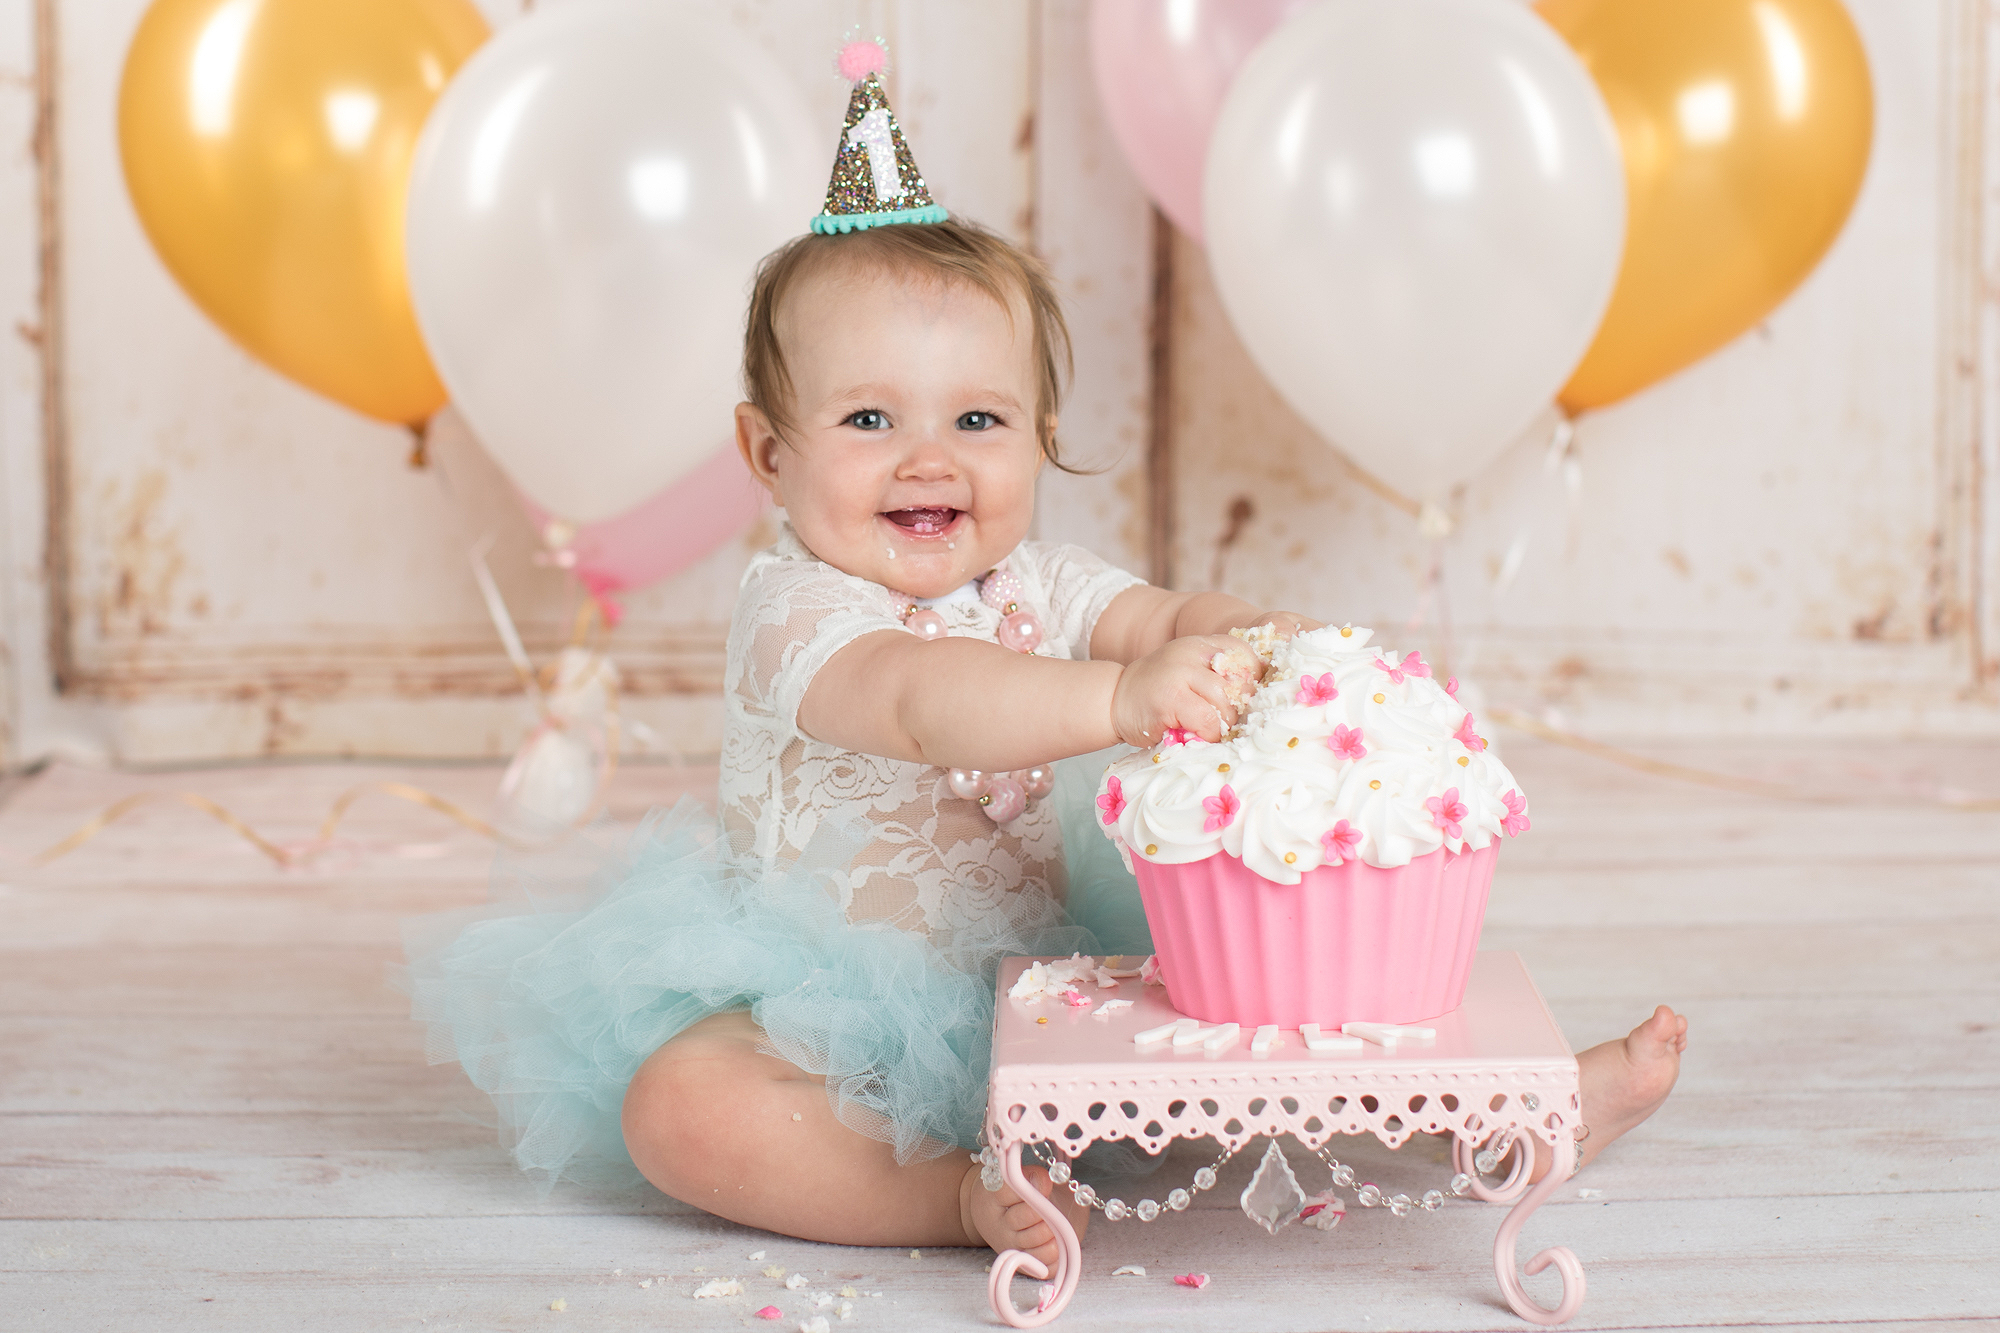 Swell Book An Unforgettable Cake Smash Photography Session Personalised Birthday Cards Beptaeletsinfo